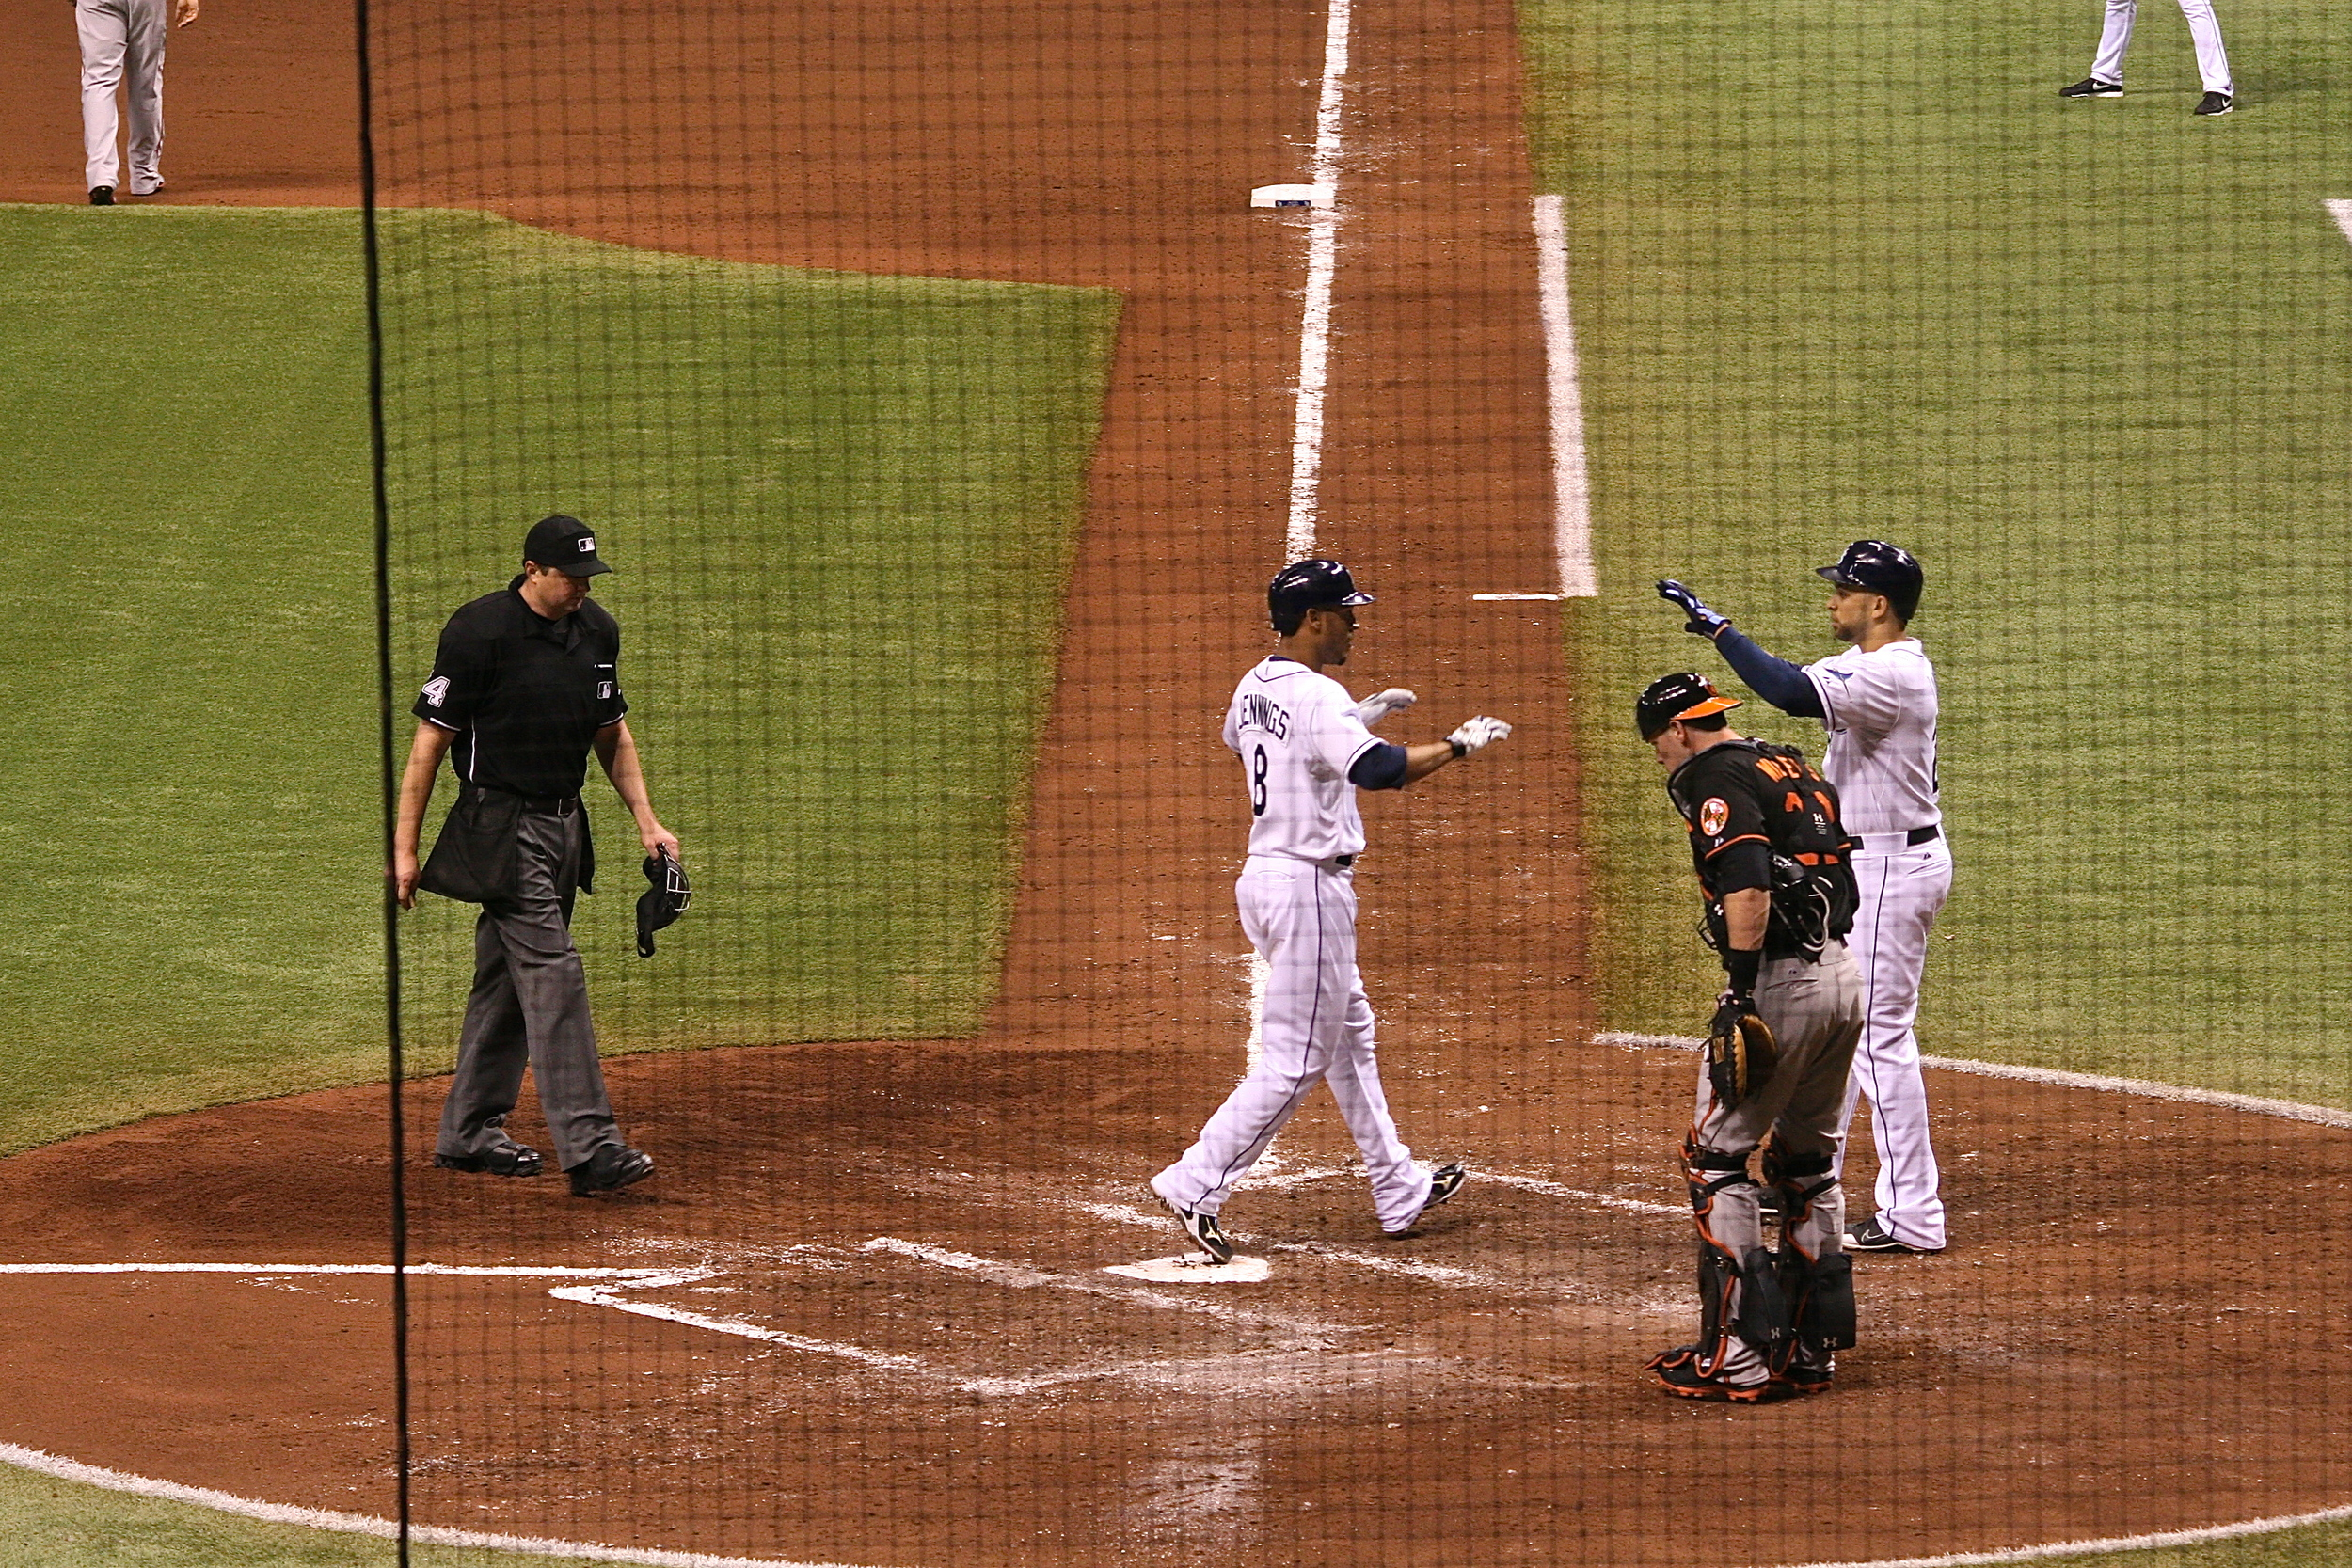 Desmond Jennings with the go-ahead home run